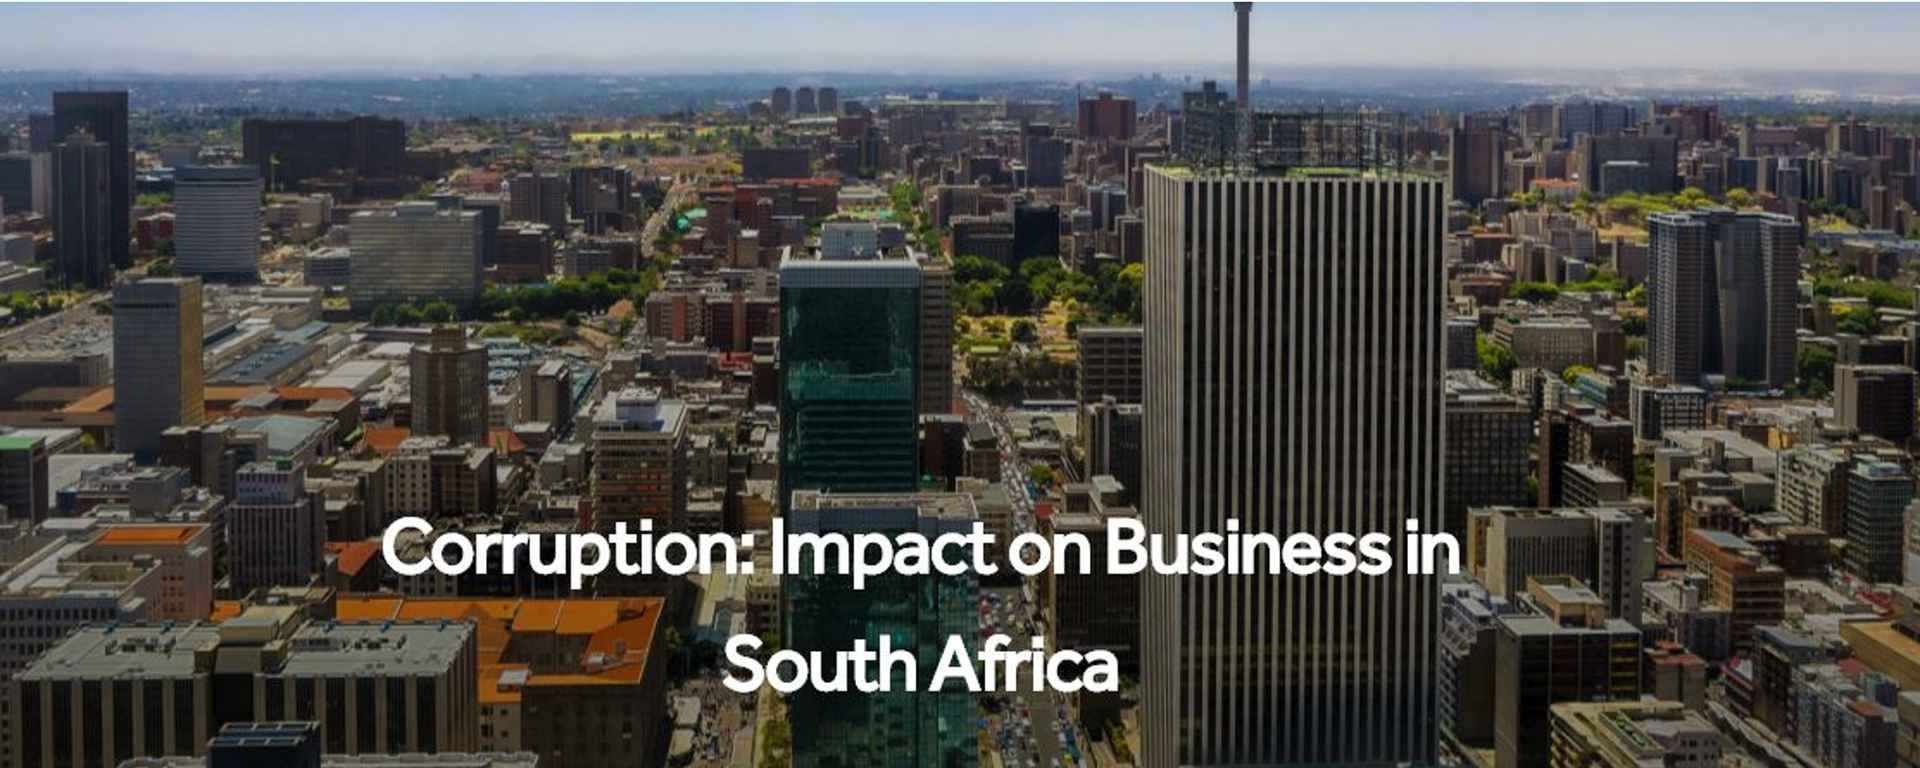 Invest Africa - Corruption: Impact on Business in South Africa Movemeback African event cover image